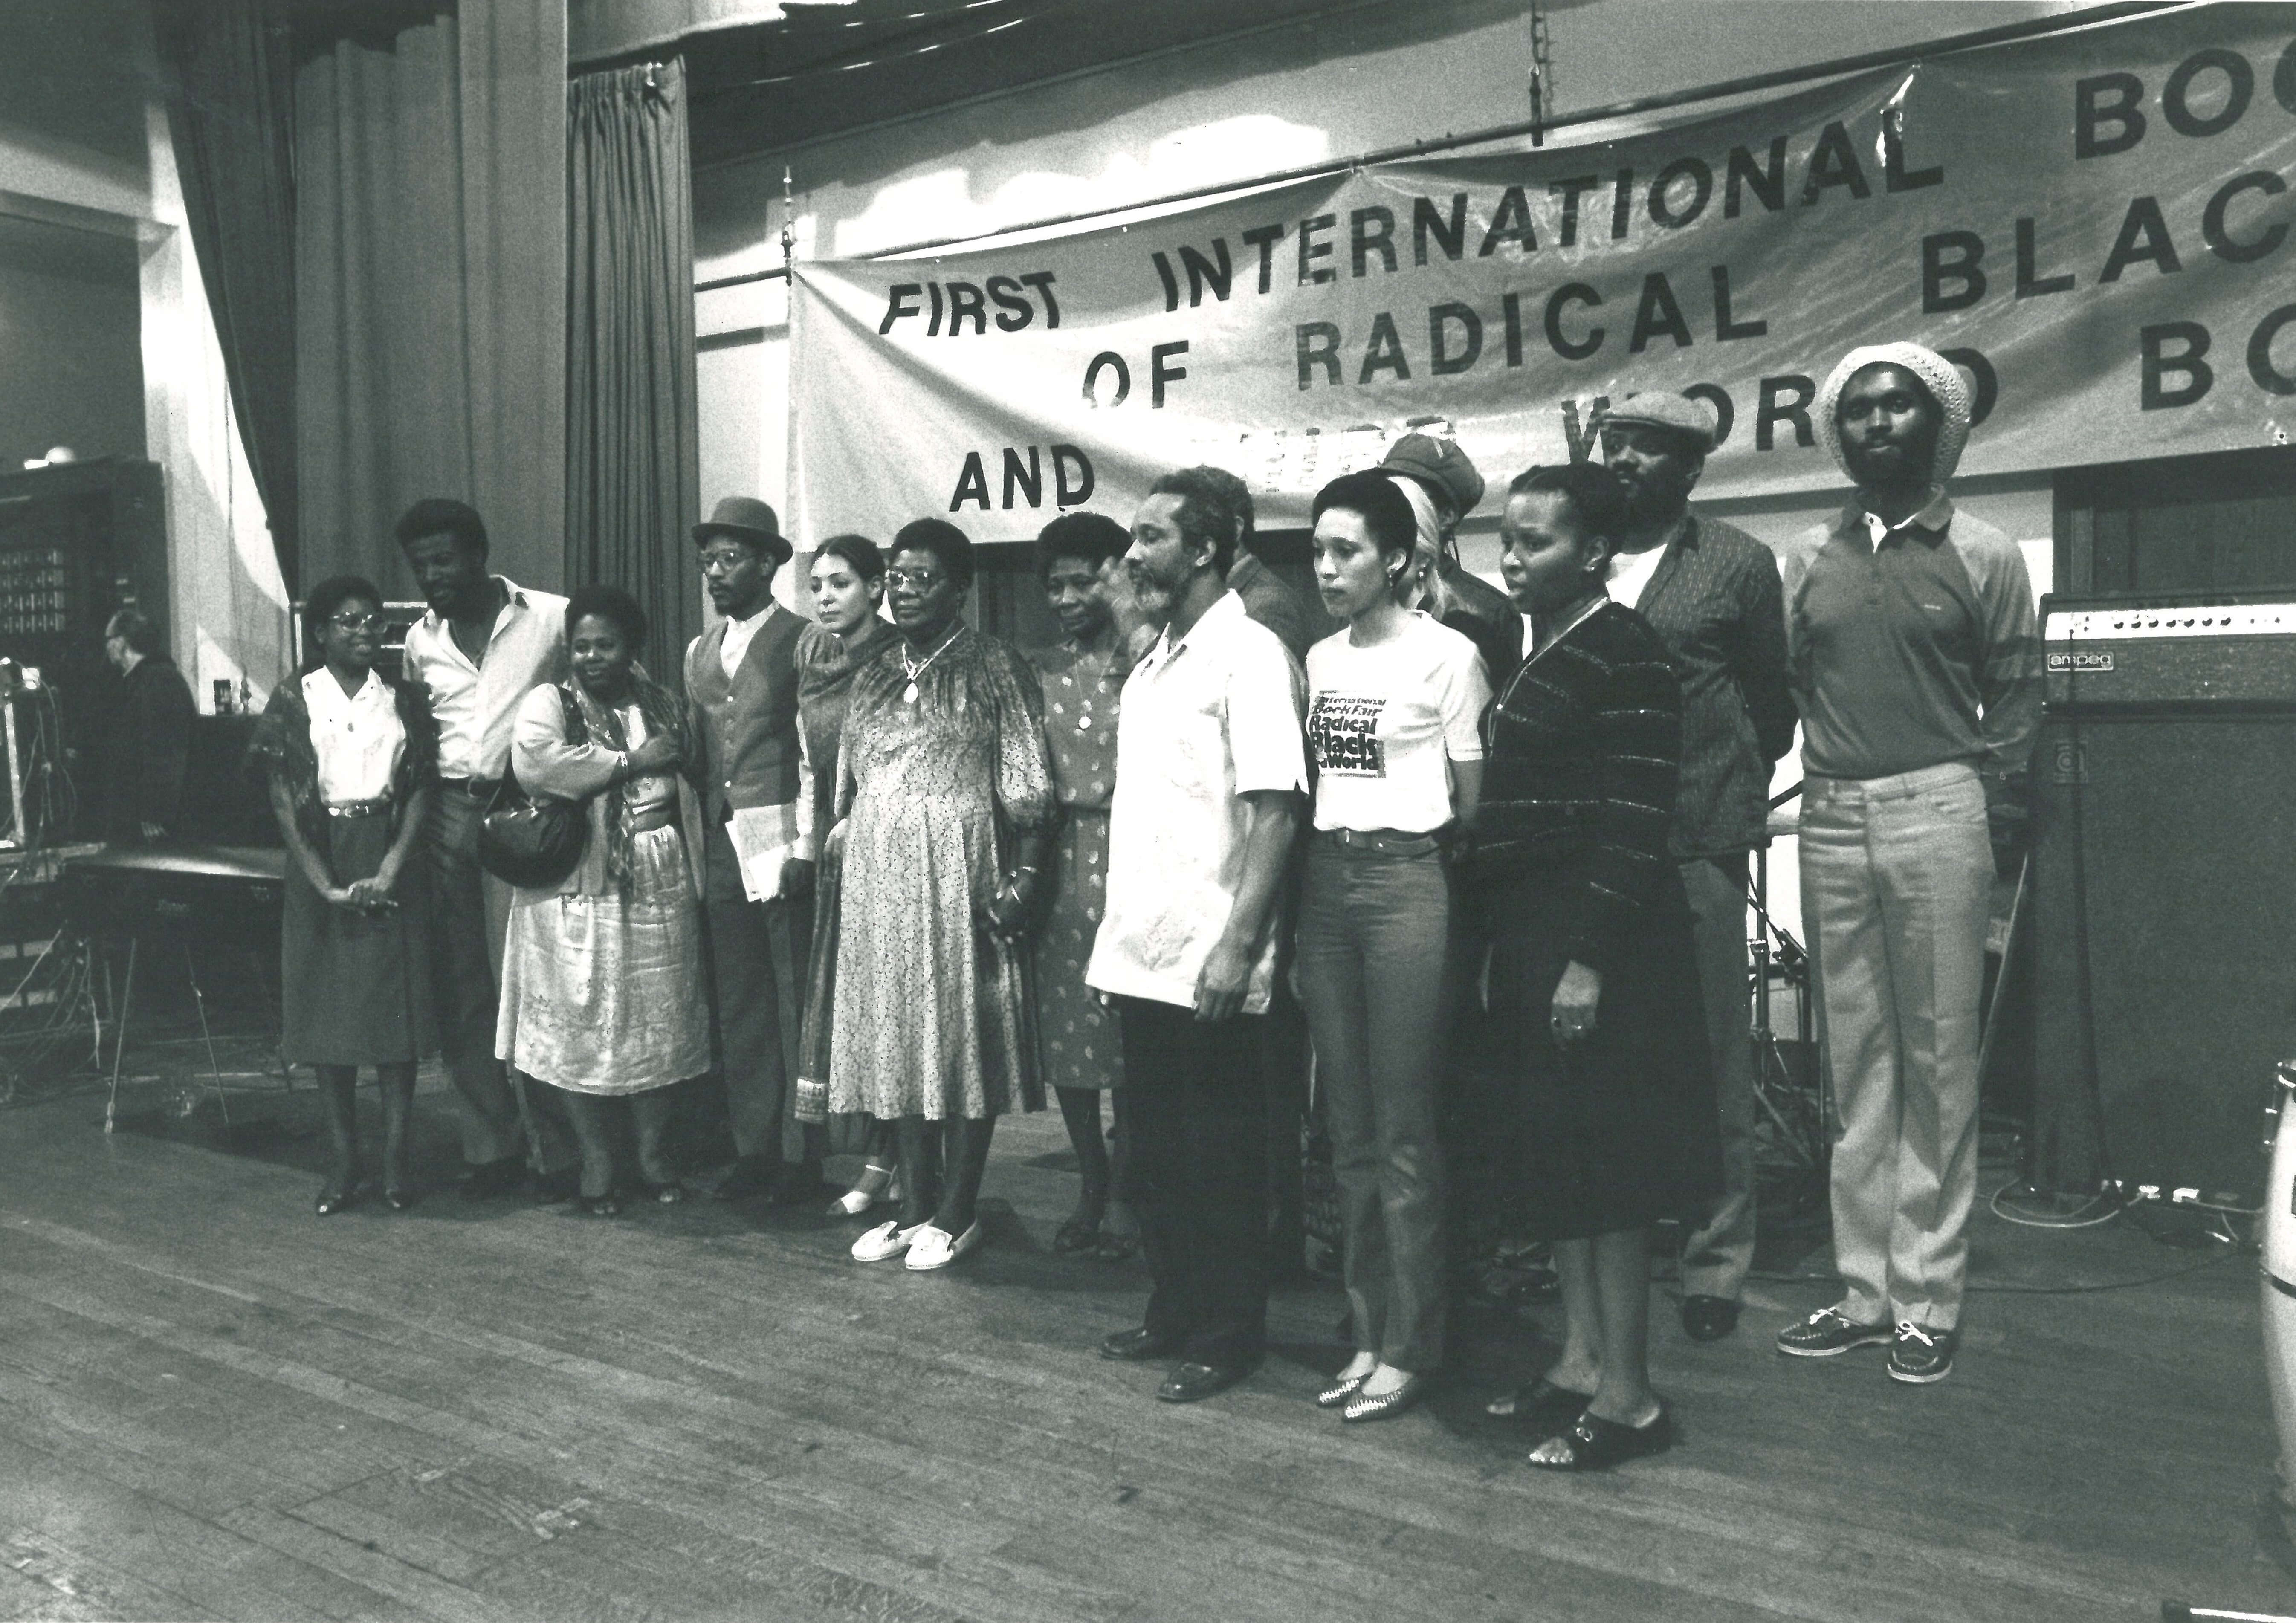 15 individuals are standing on stage, as if posing for a group photo. A banner hangs behind, indicating that this is the first international book fair to be held. The group includes Linton Kwesi Johnson, Eric and Jessica Huntley, Darcus Howe and Janice Durham.